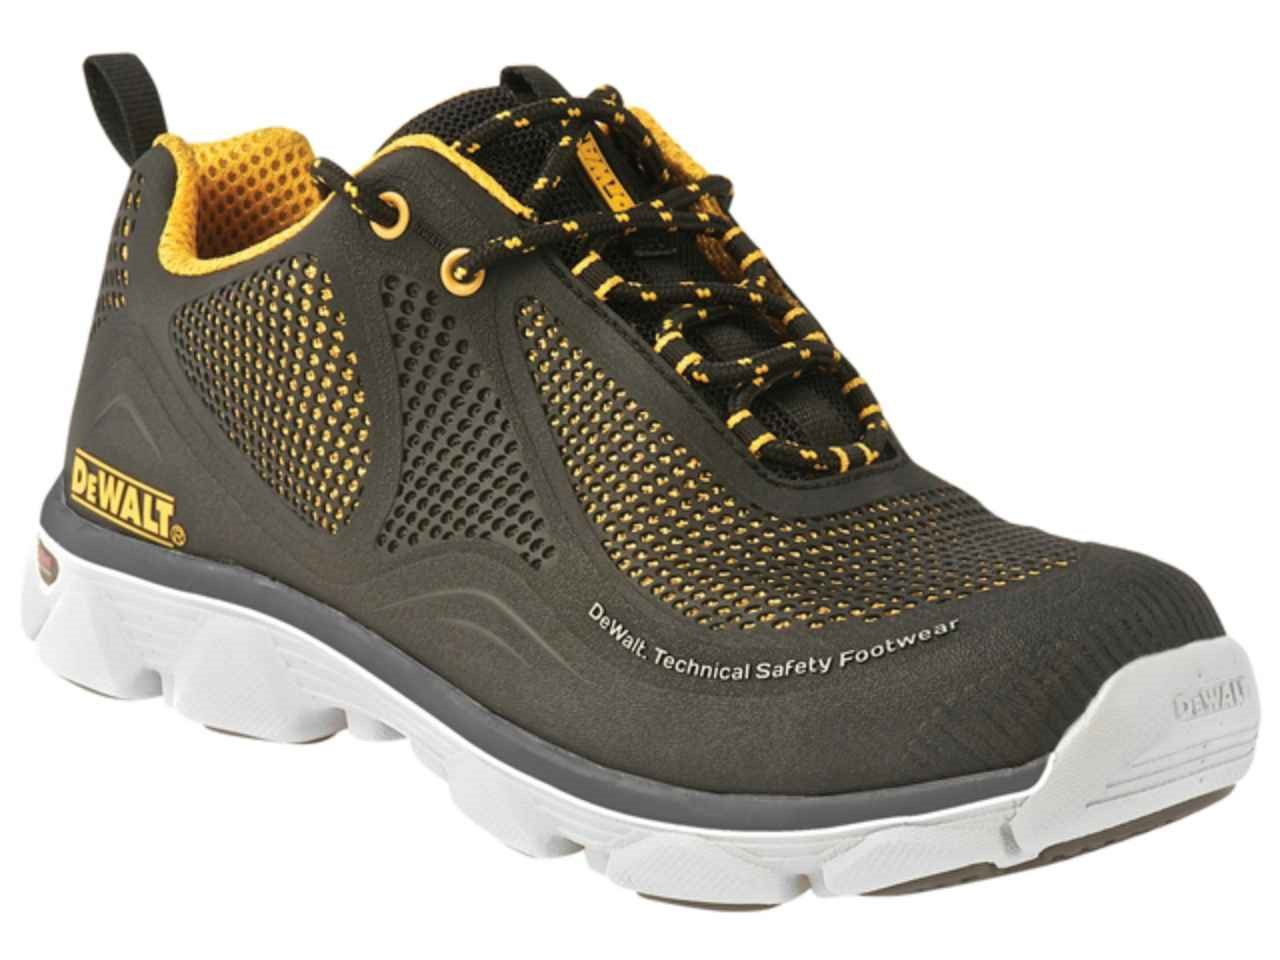 Dewalt Krypton9 Krypton Safety Trainer Size 9